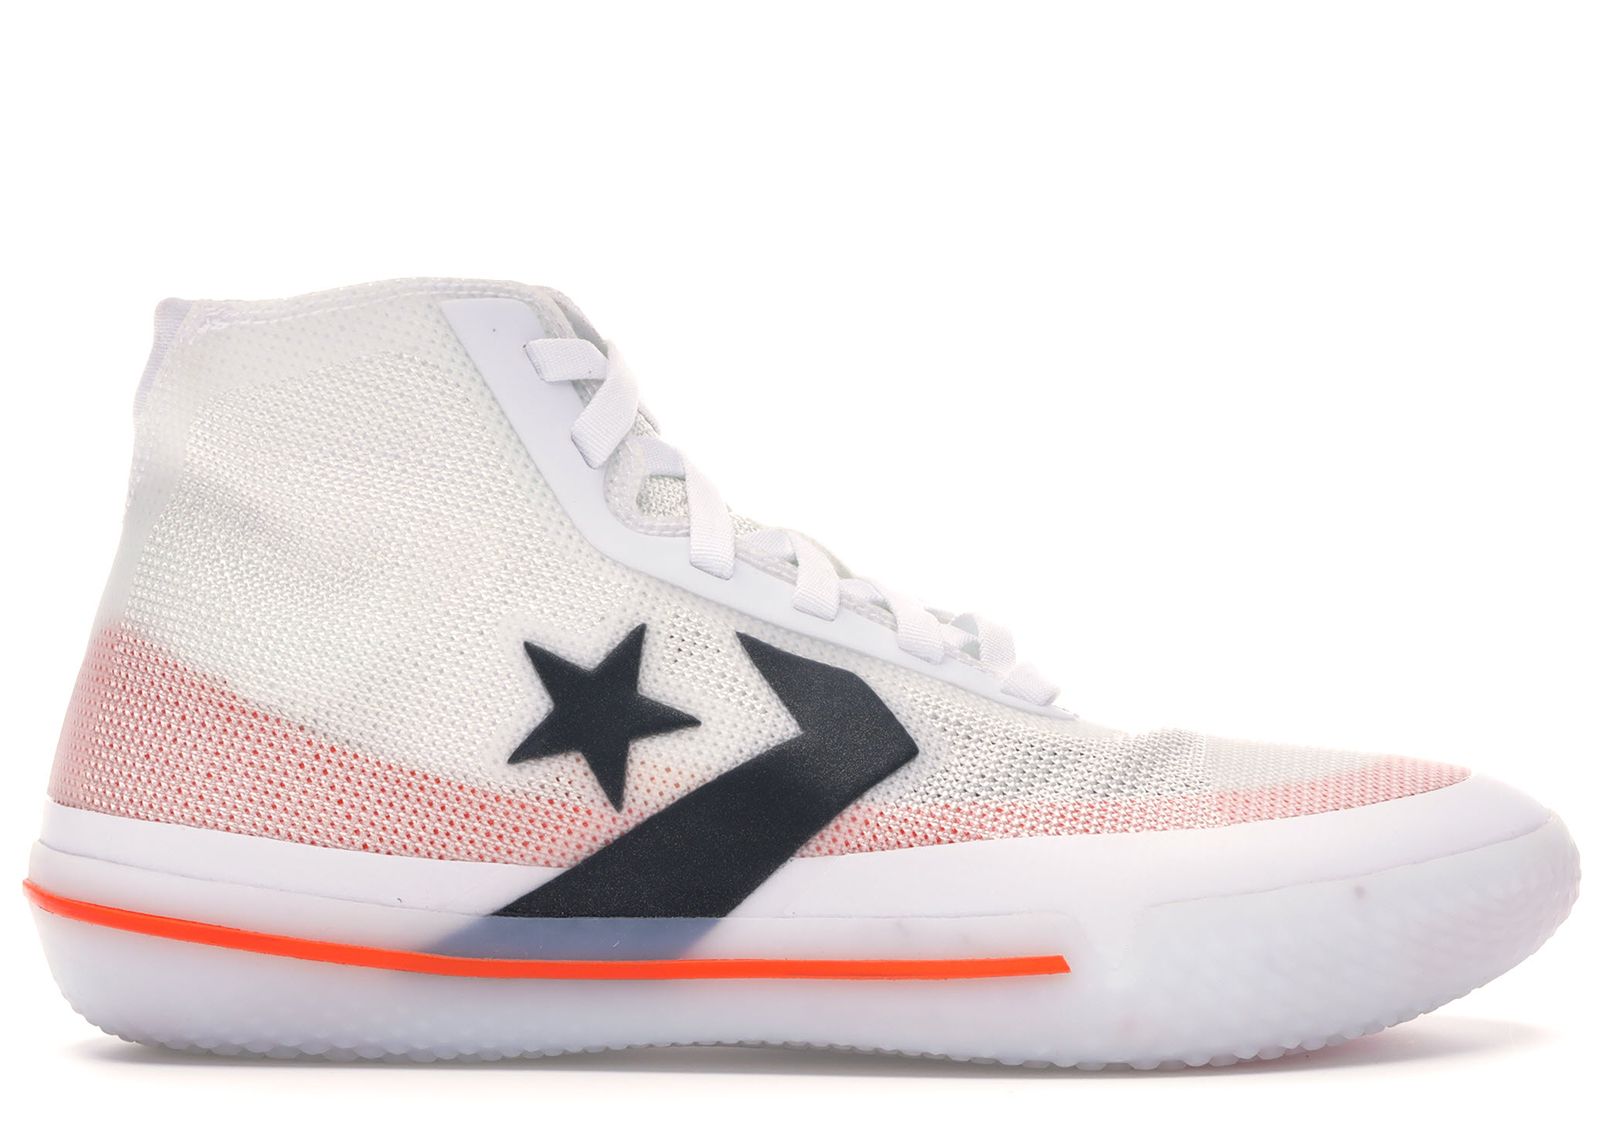 Converse All Star Pro BB White Black Orange